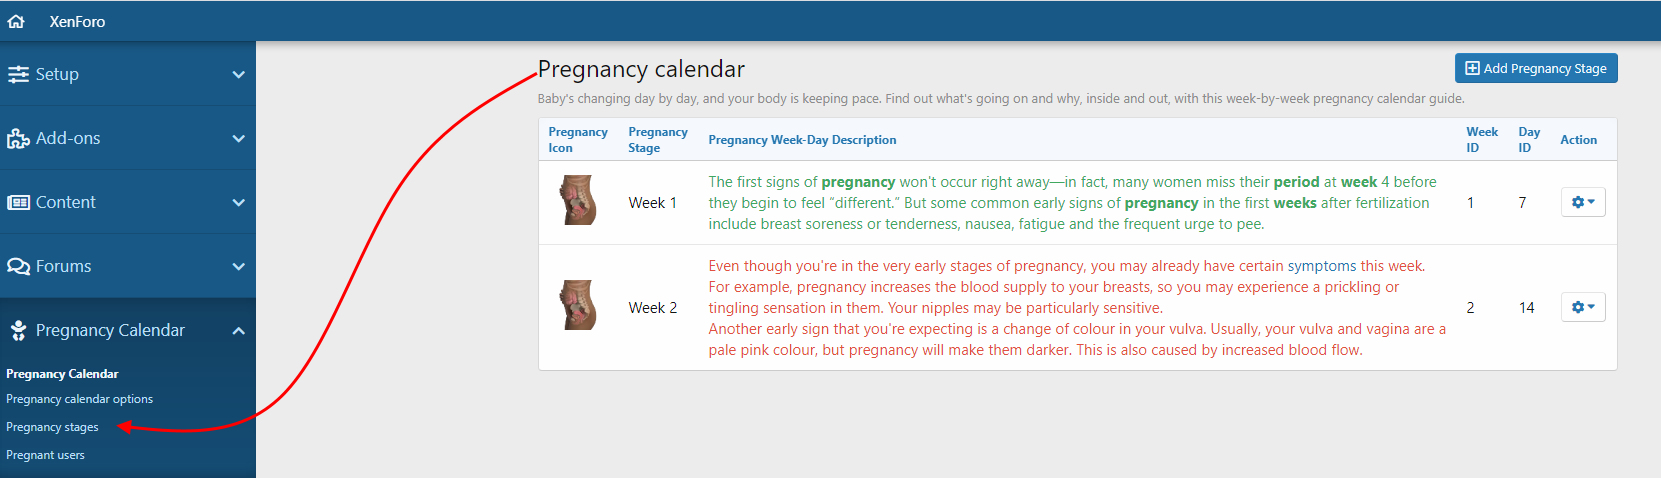 pregnancy-stages-png.3708